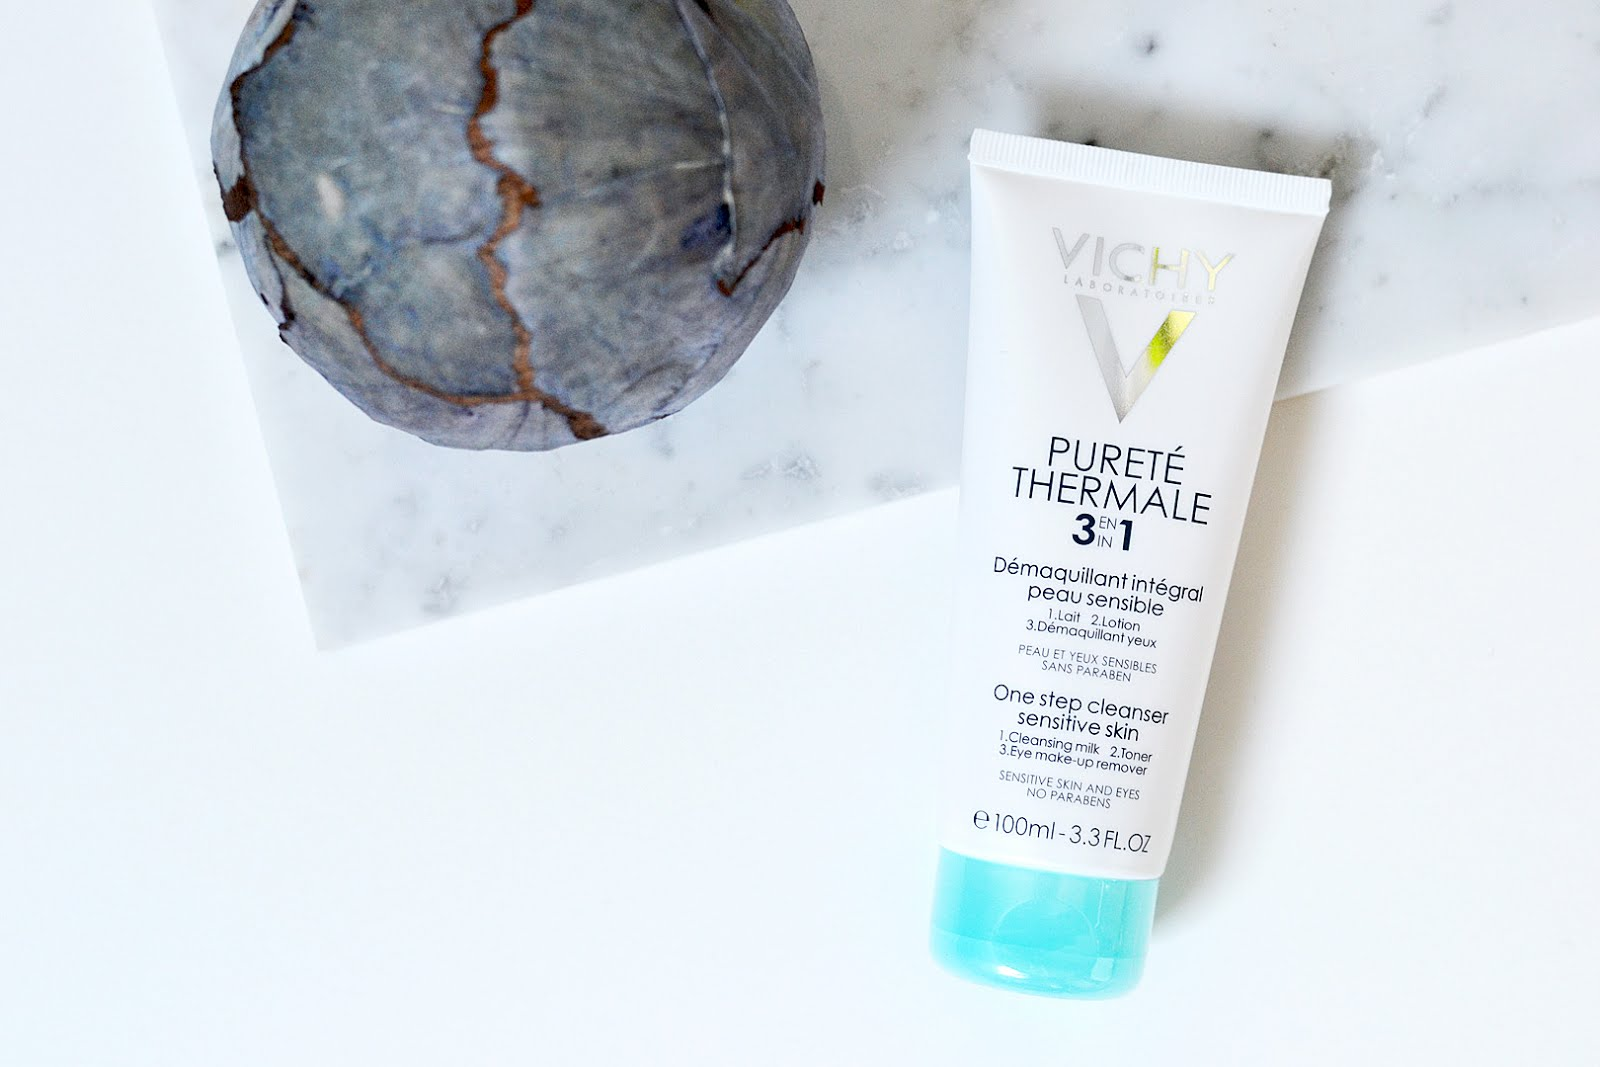 Vichy, purete thermale, ideal body milk serum, viata, online apotheek, review